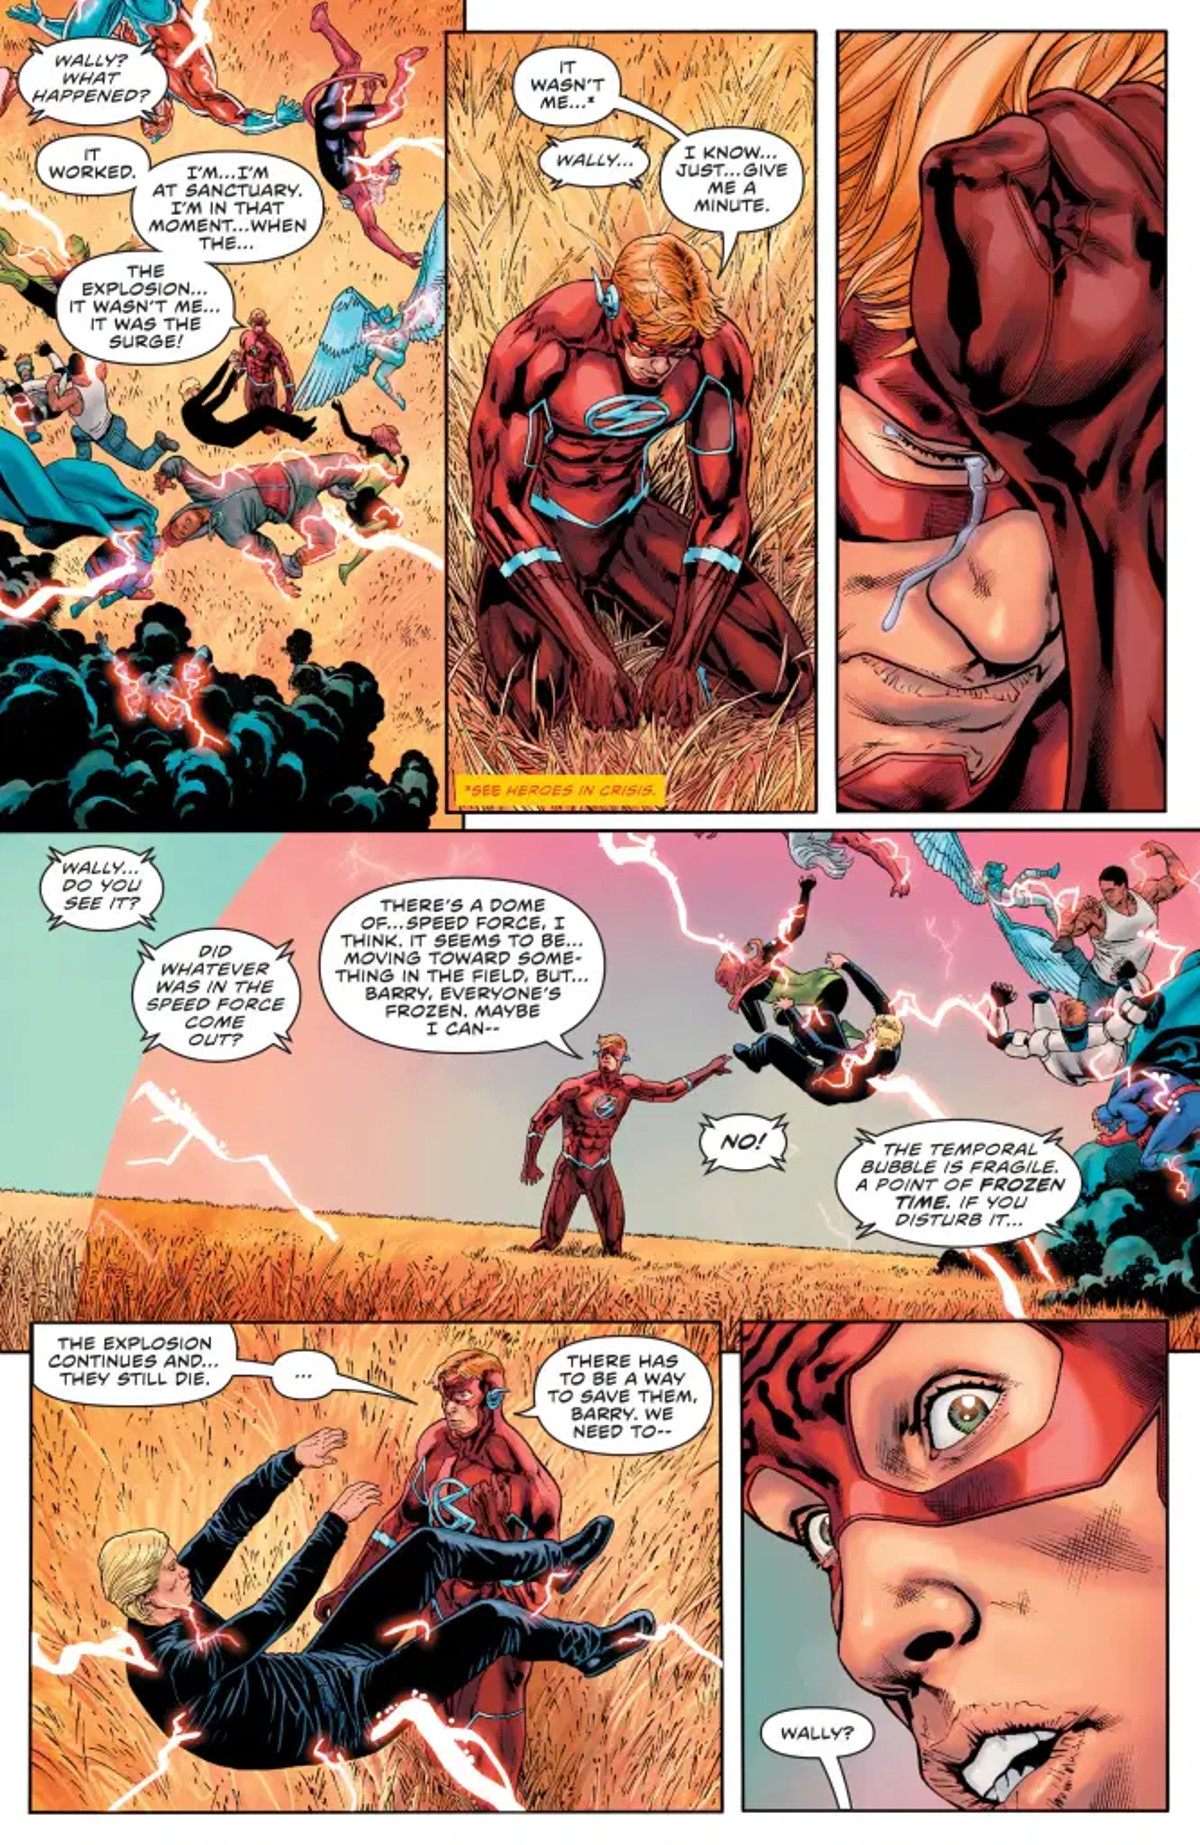 The Flash Annual #1 2001 Page 1